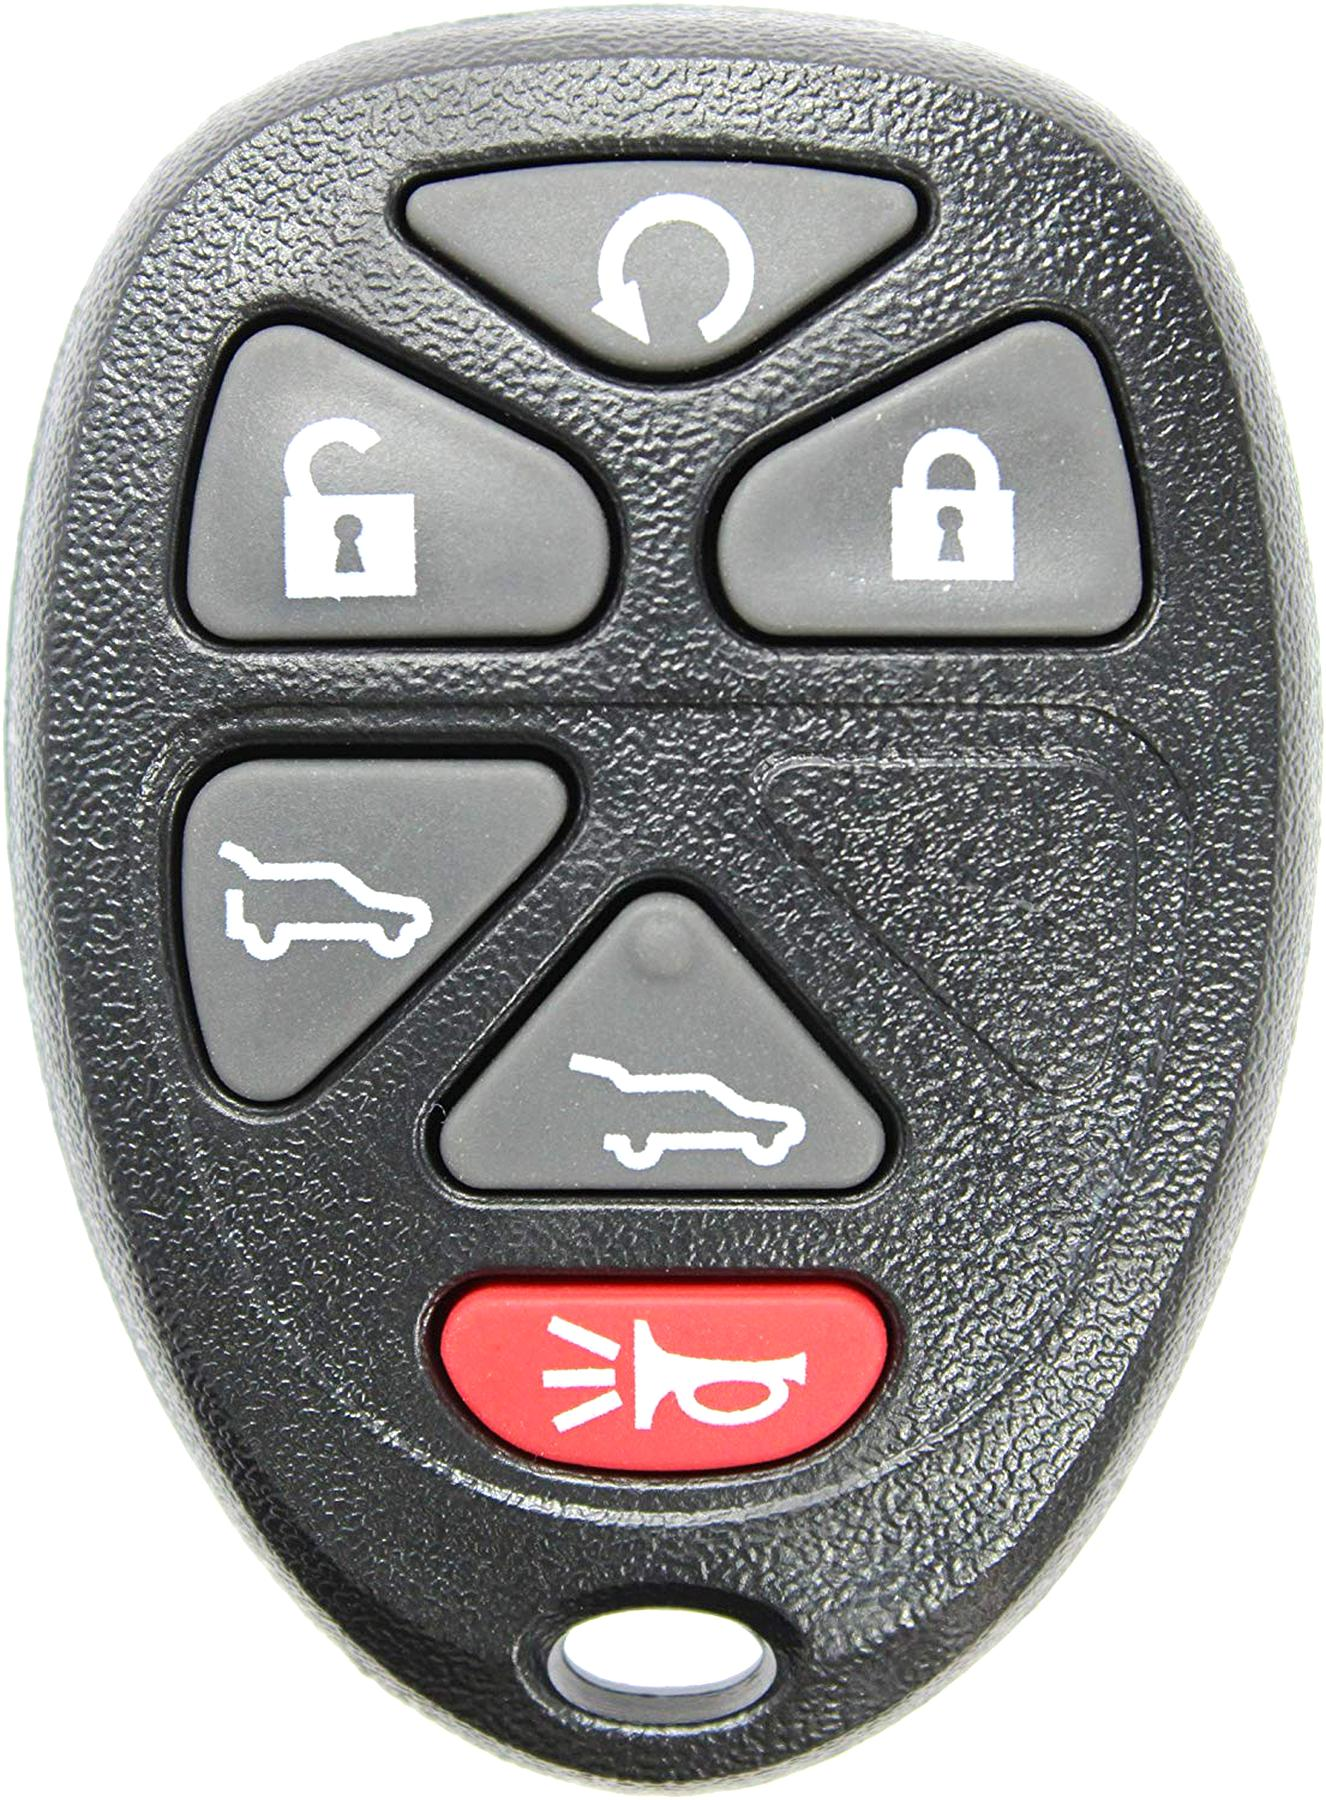 KeylessOption Keyless Entry Remote Car Key Fob Replacement for 16245100-29 Pa...